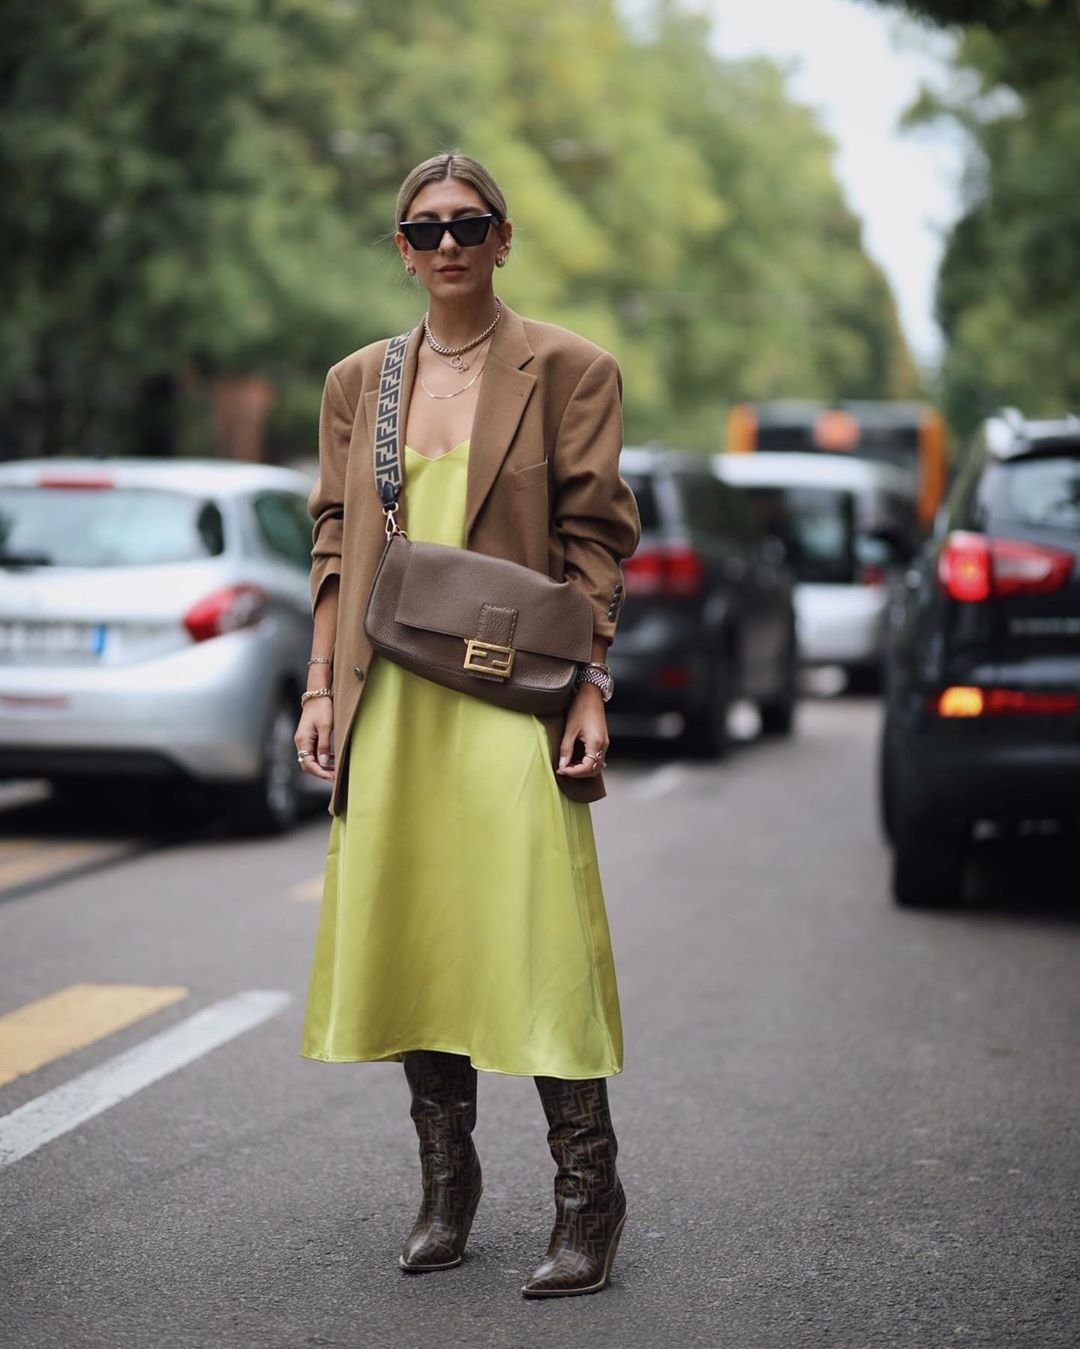 aylin-koenig-slip-satin-midi-dress-fendi-outfit-instagram